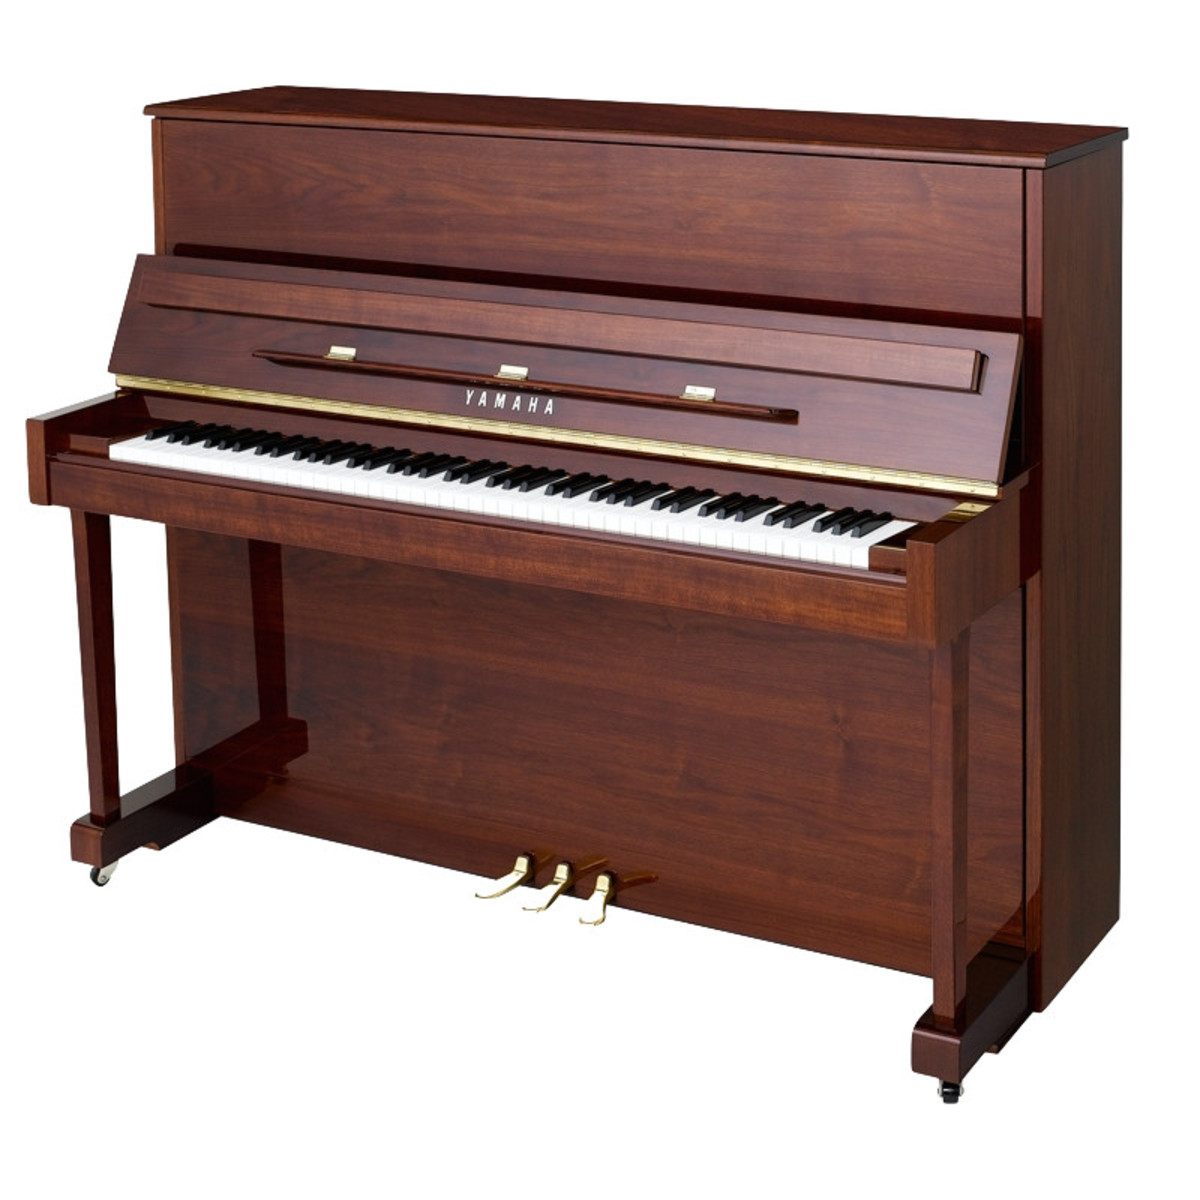 Yamaha b3 upright acoustic piano simulated mahogany for Yamaha pianos nj